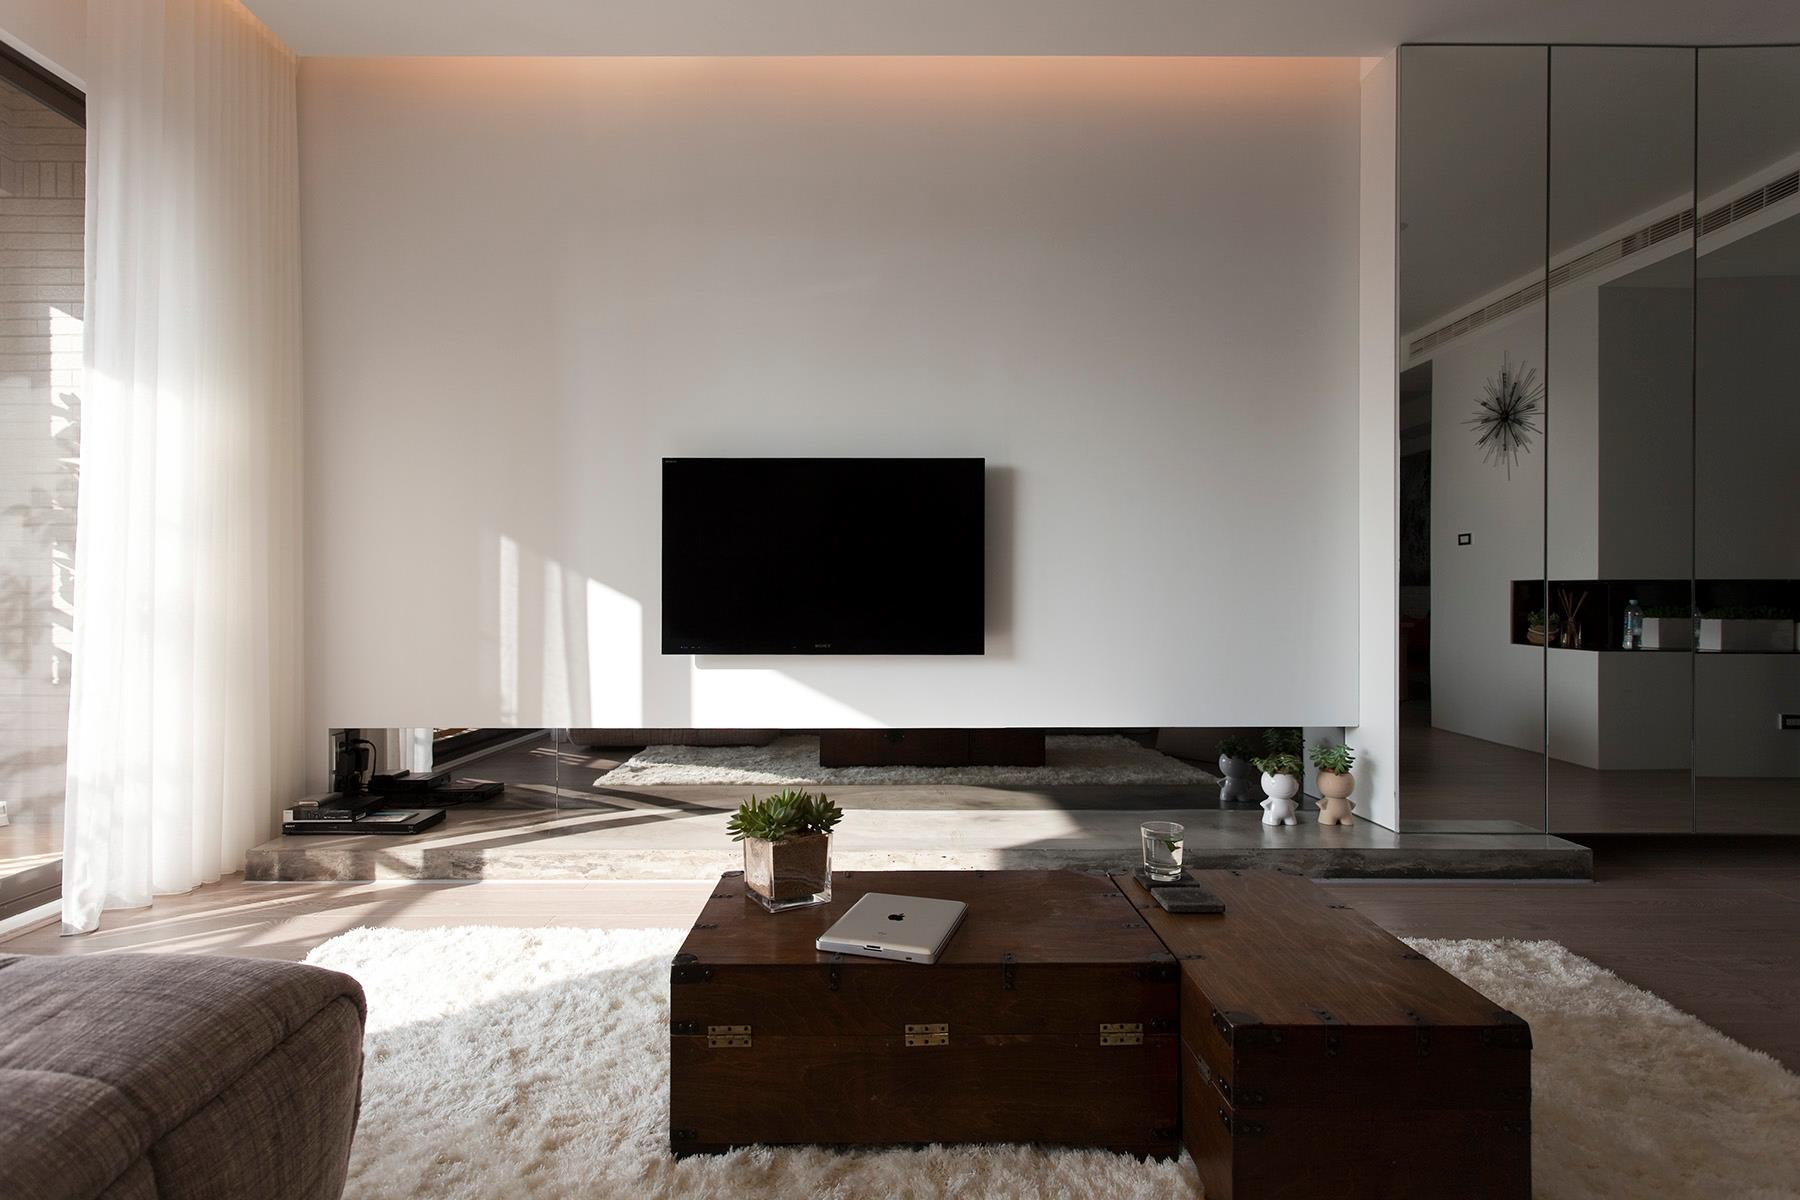 Fabulous Modern Living Room Decor 1800 x 1200 · 160 kB · jpeg